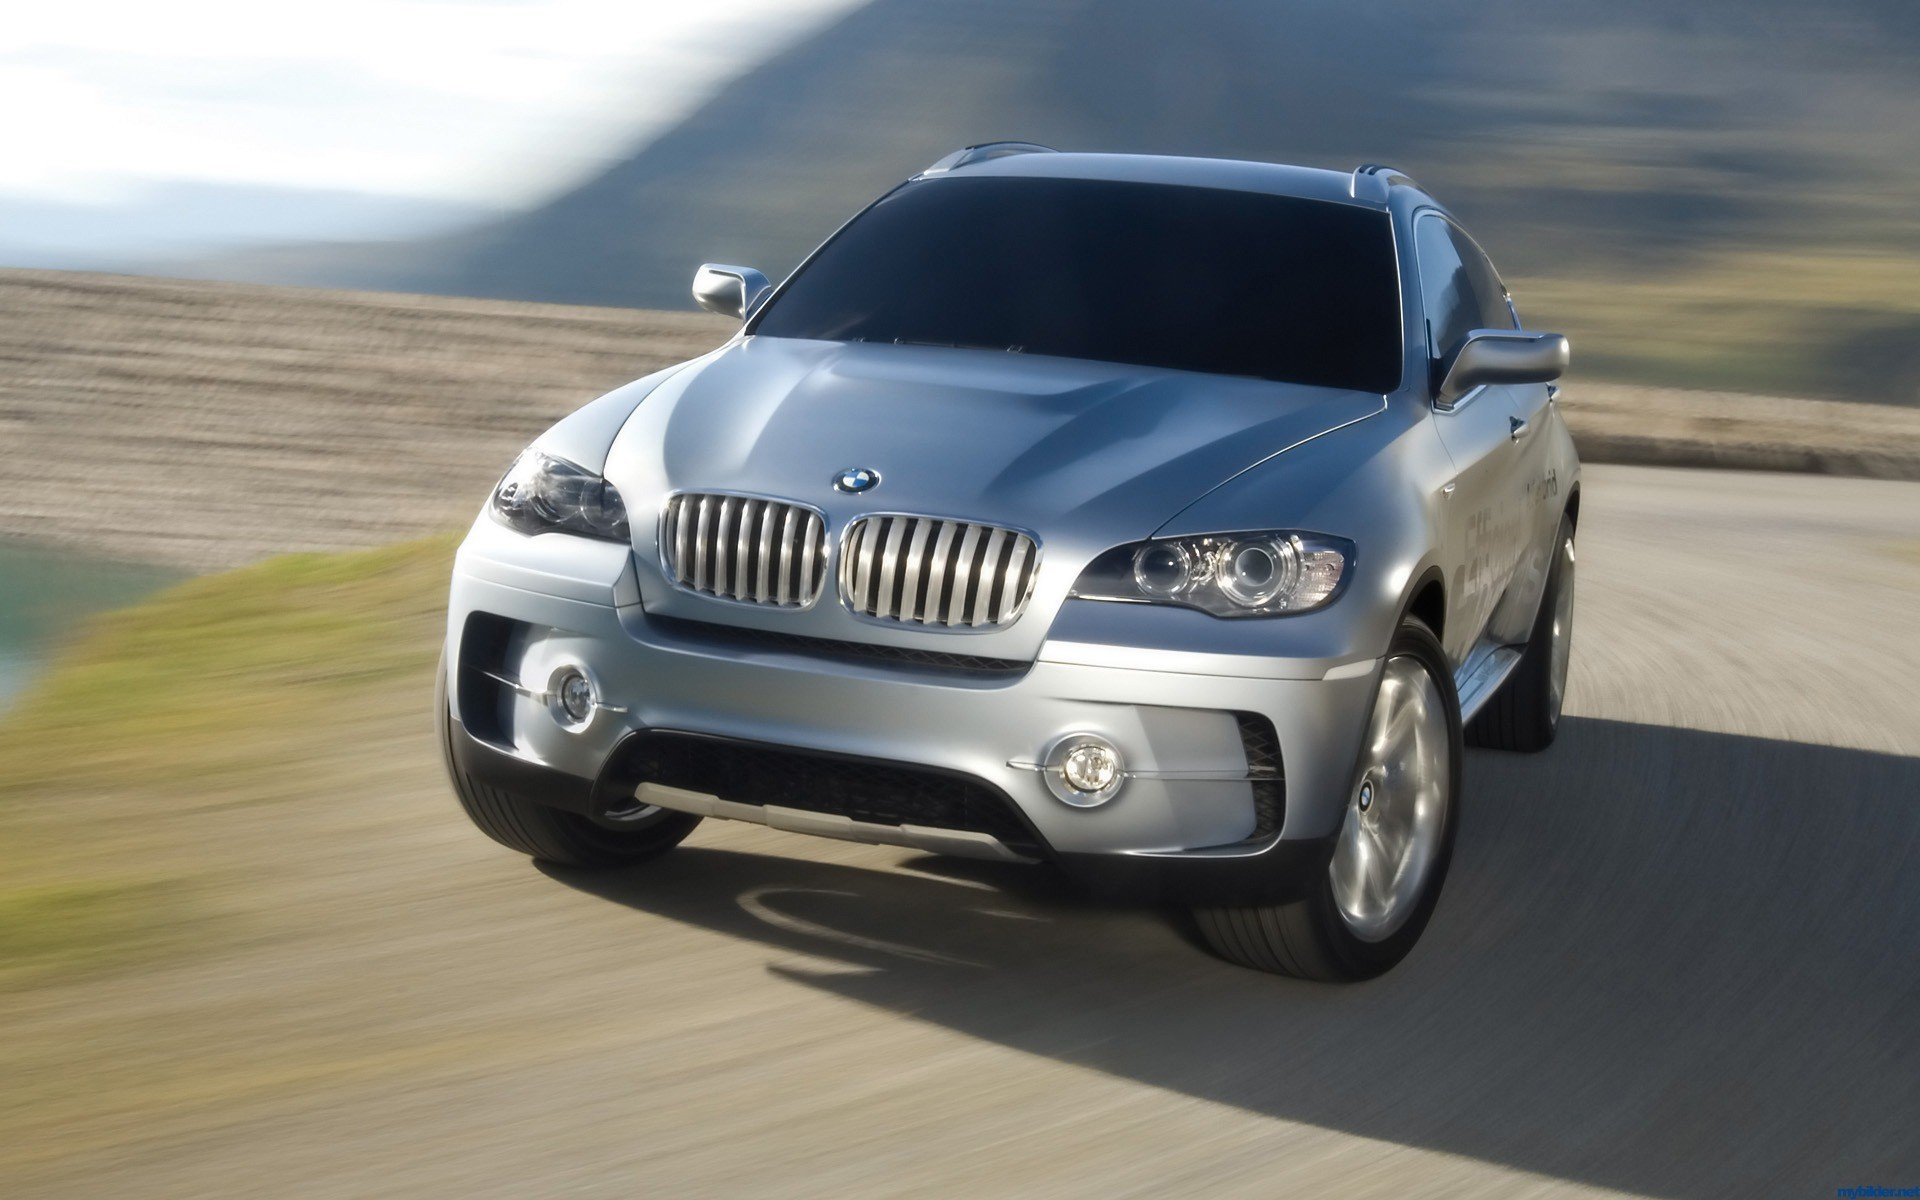 cars vehicles bmw x5 HD Wallpaper